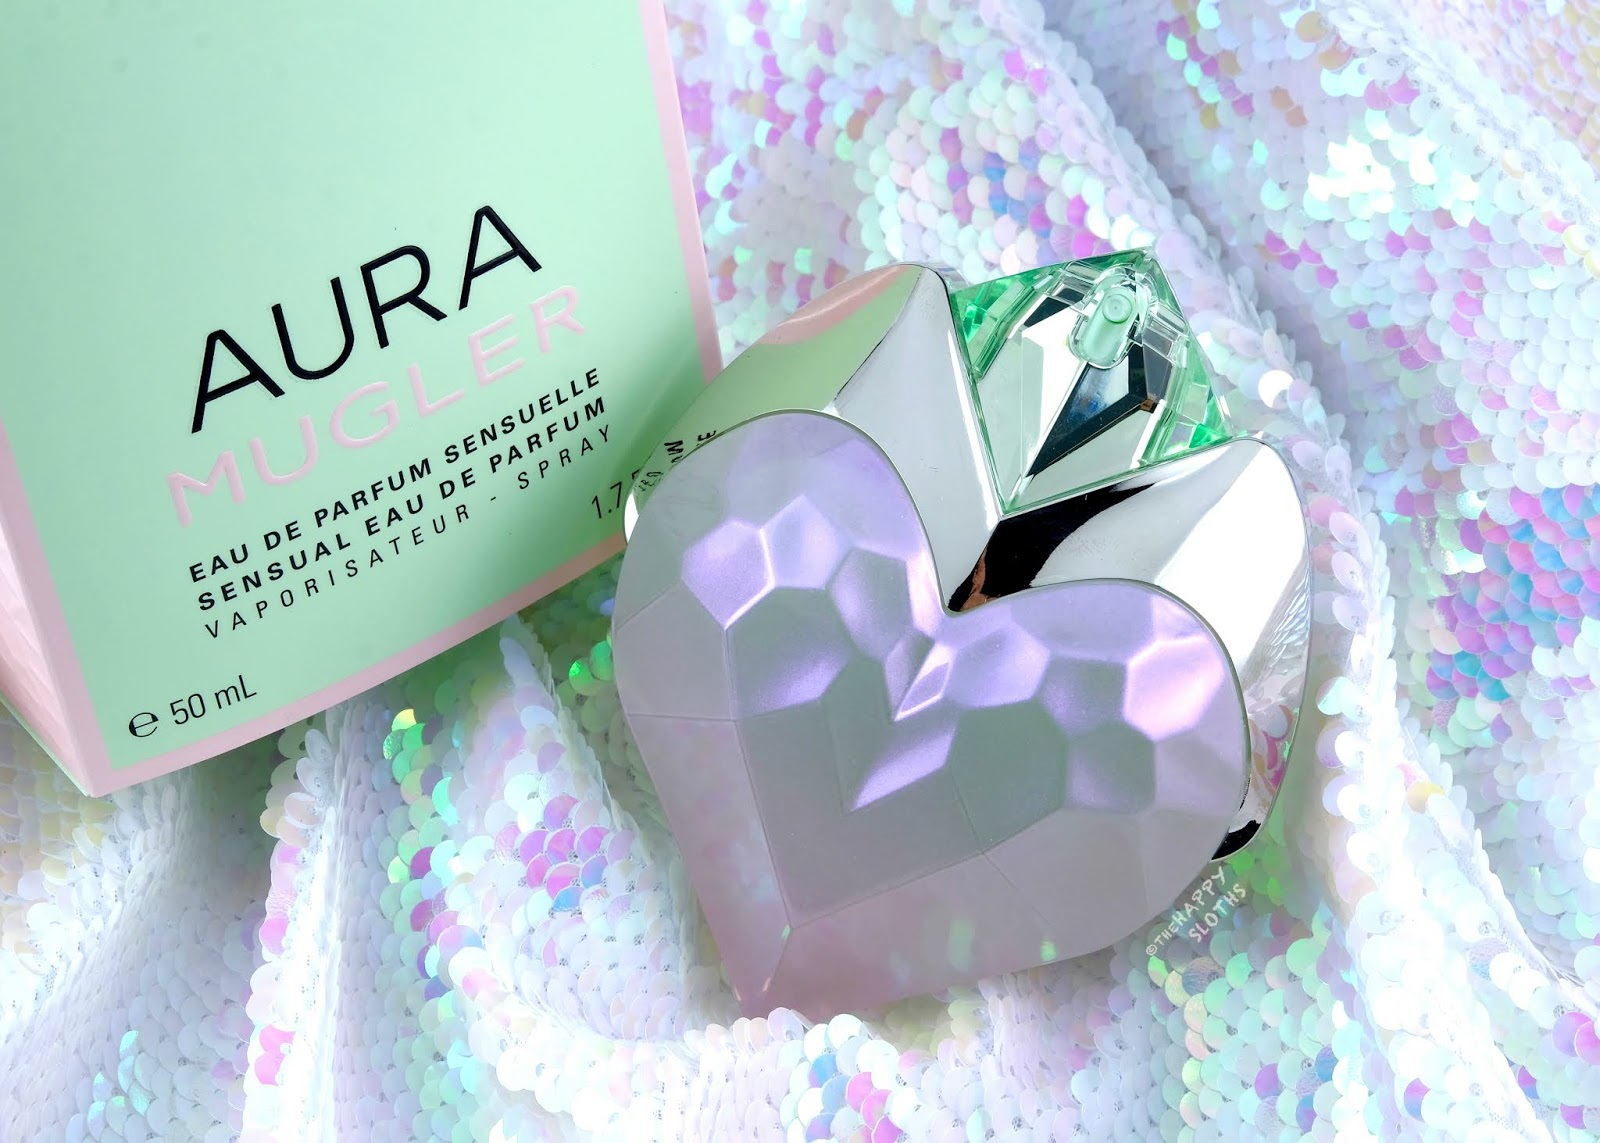 Mugler Aura Mugler Sensuelle Review The Happy Sloths Beauty Makeup And Skincare Blog With Reviews And Swatches